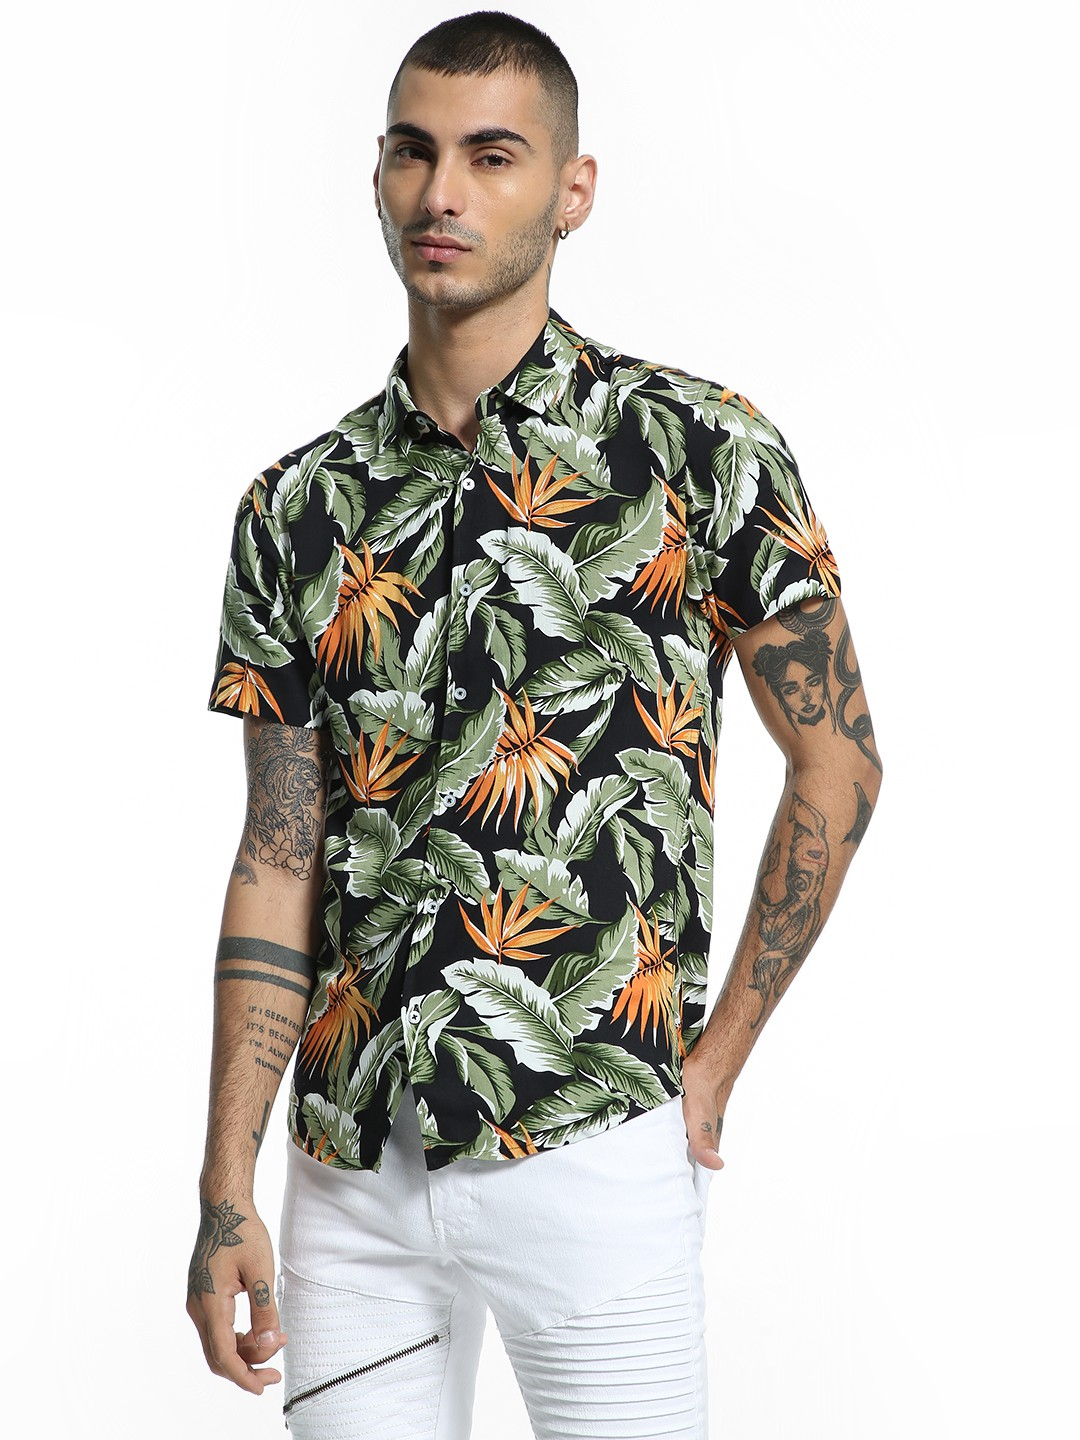 TRUE RUG Multi Tropical Print Short Sleeve Shirt 1